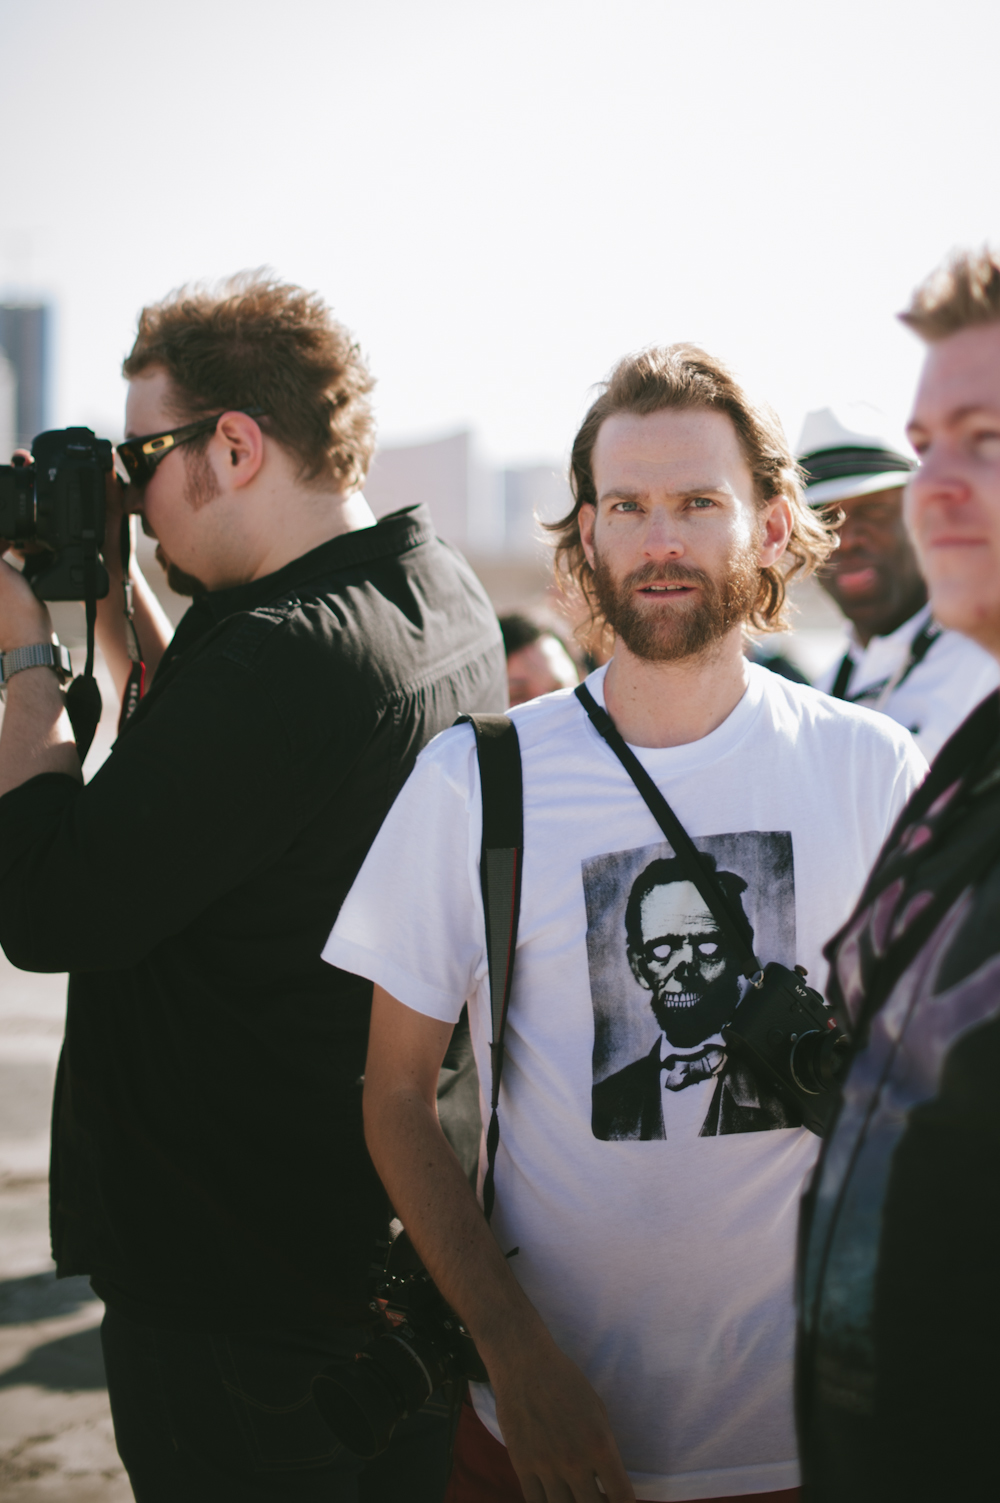 Ryan Muirhead in Las Vegas with the Film Season 2 crew and [Framed] Network